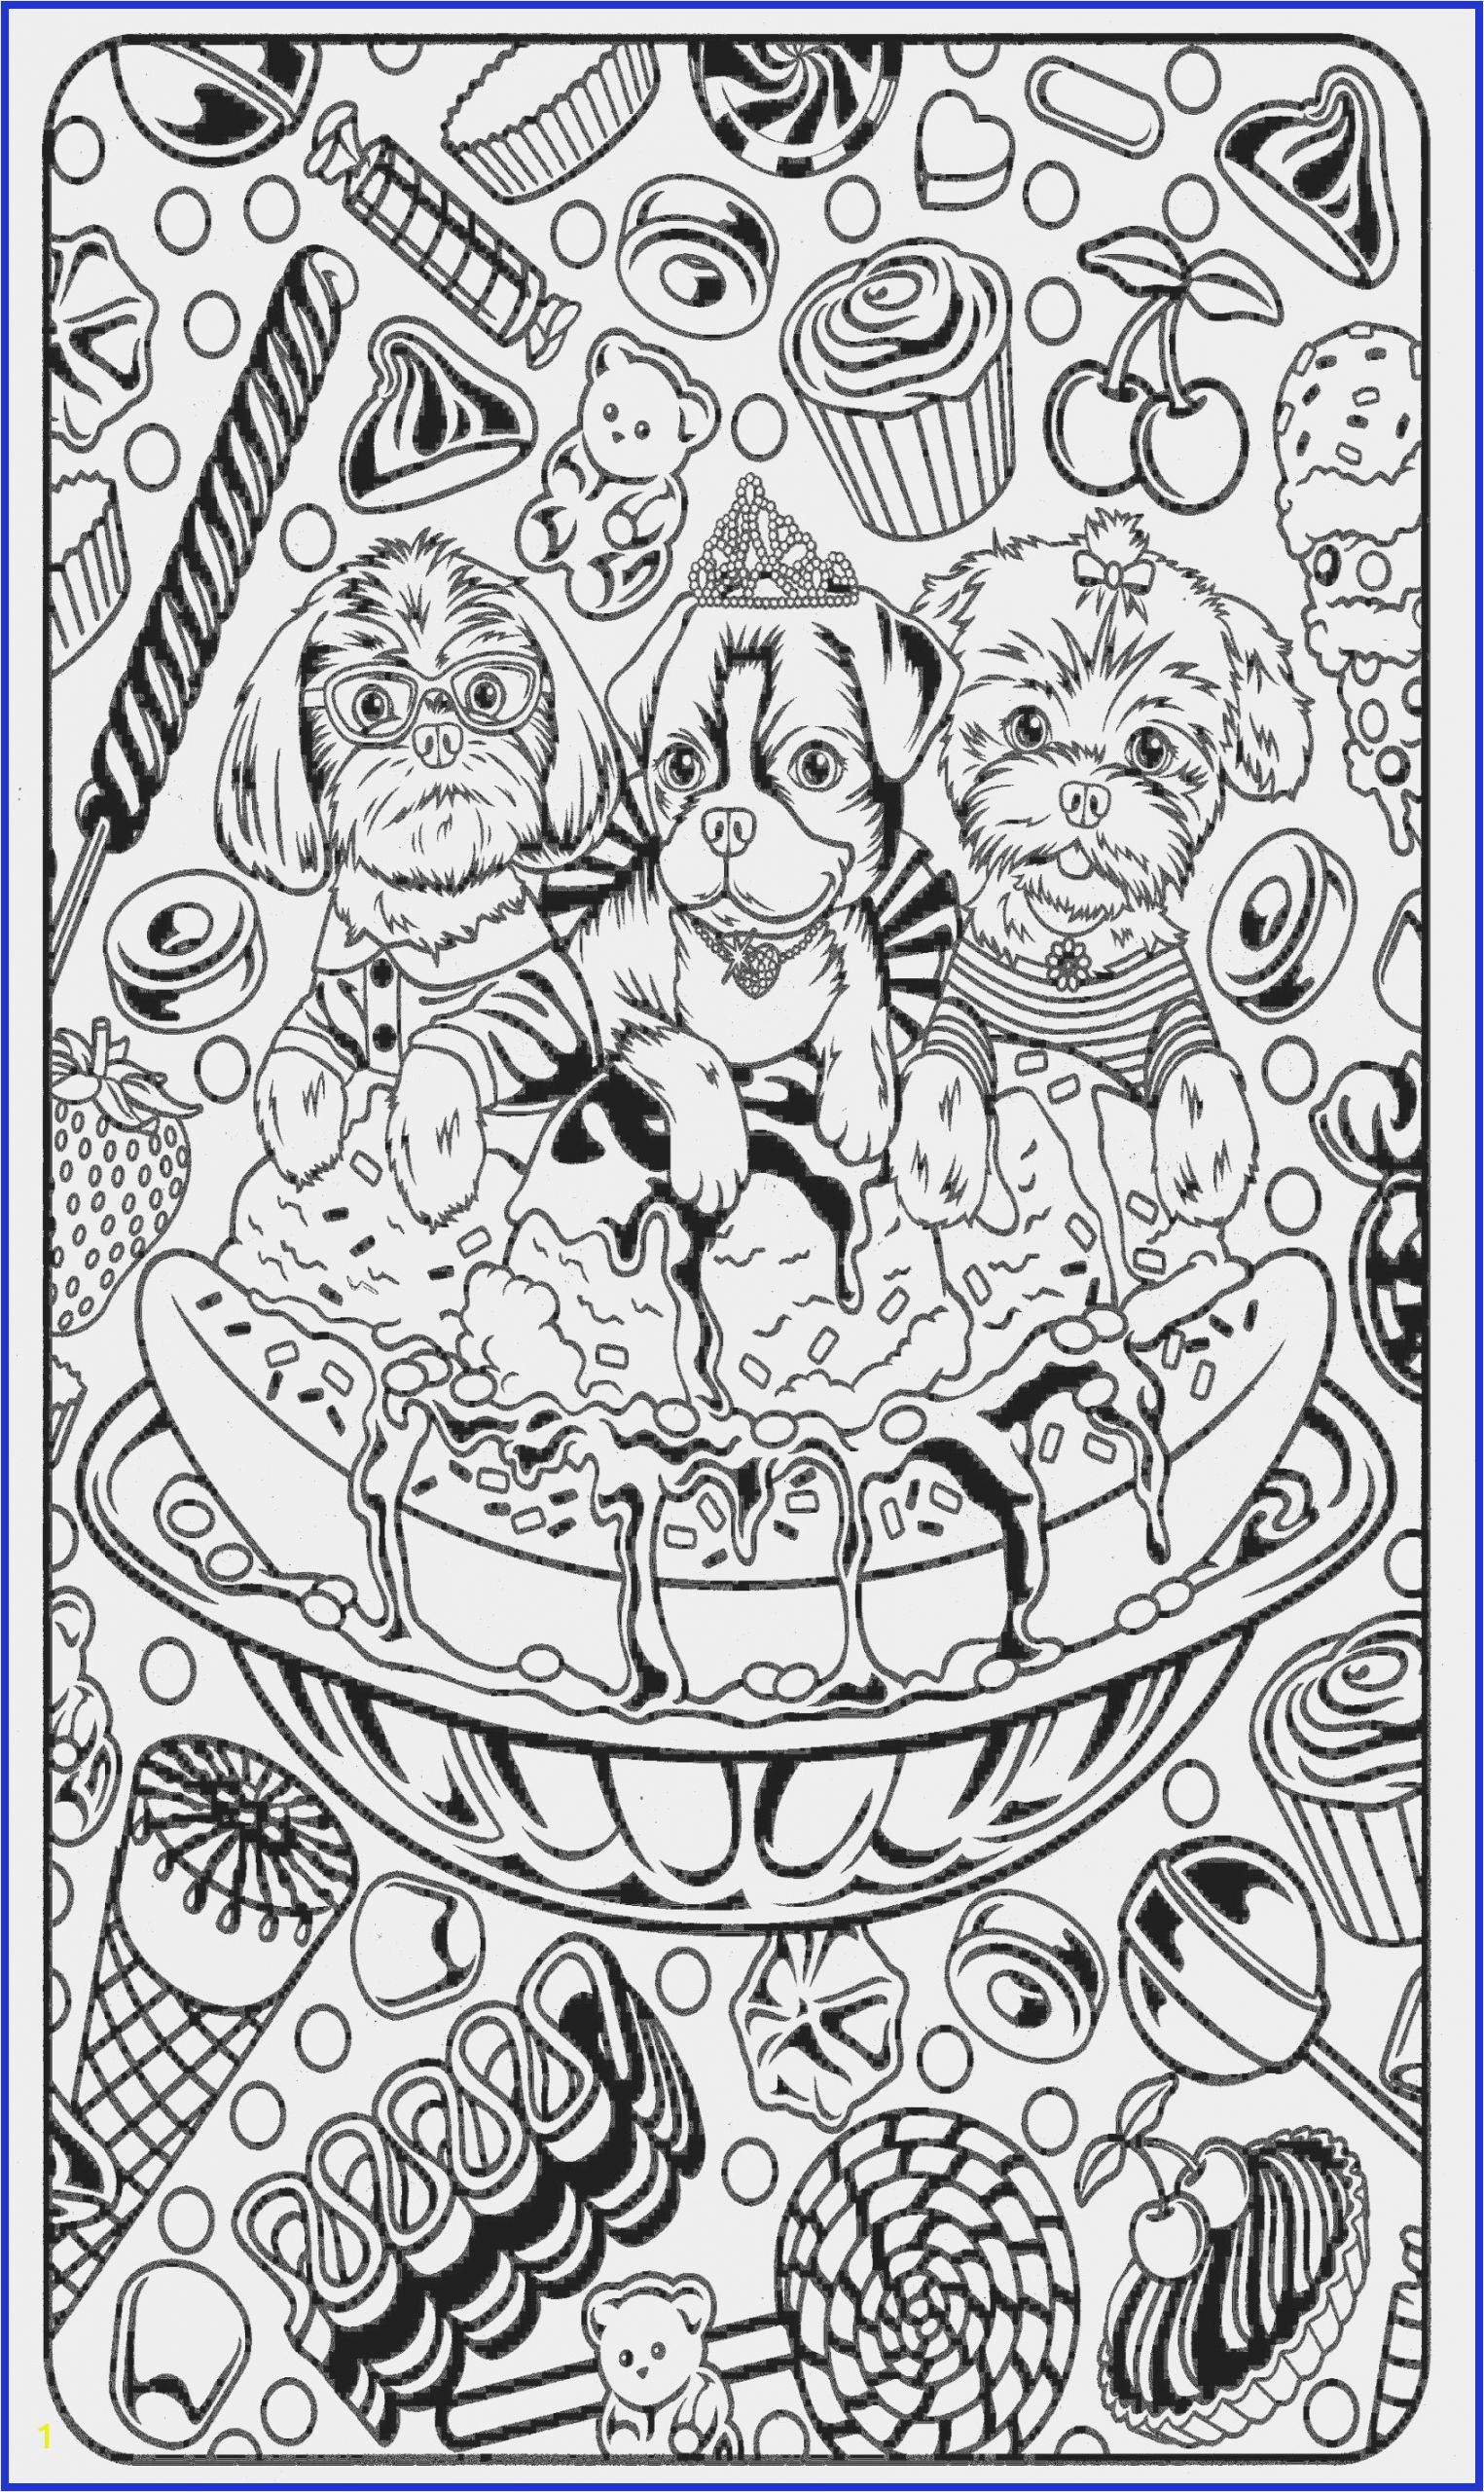 coloring page for free to print best of gallery gymnastics coloring page kiss coloring pages free summer coloring of coloring page for free to print